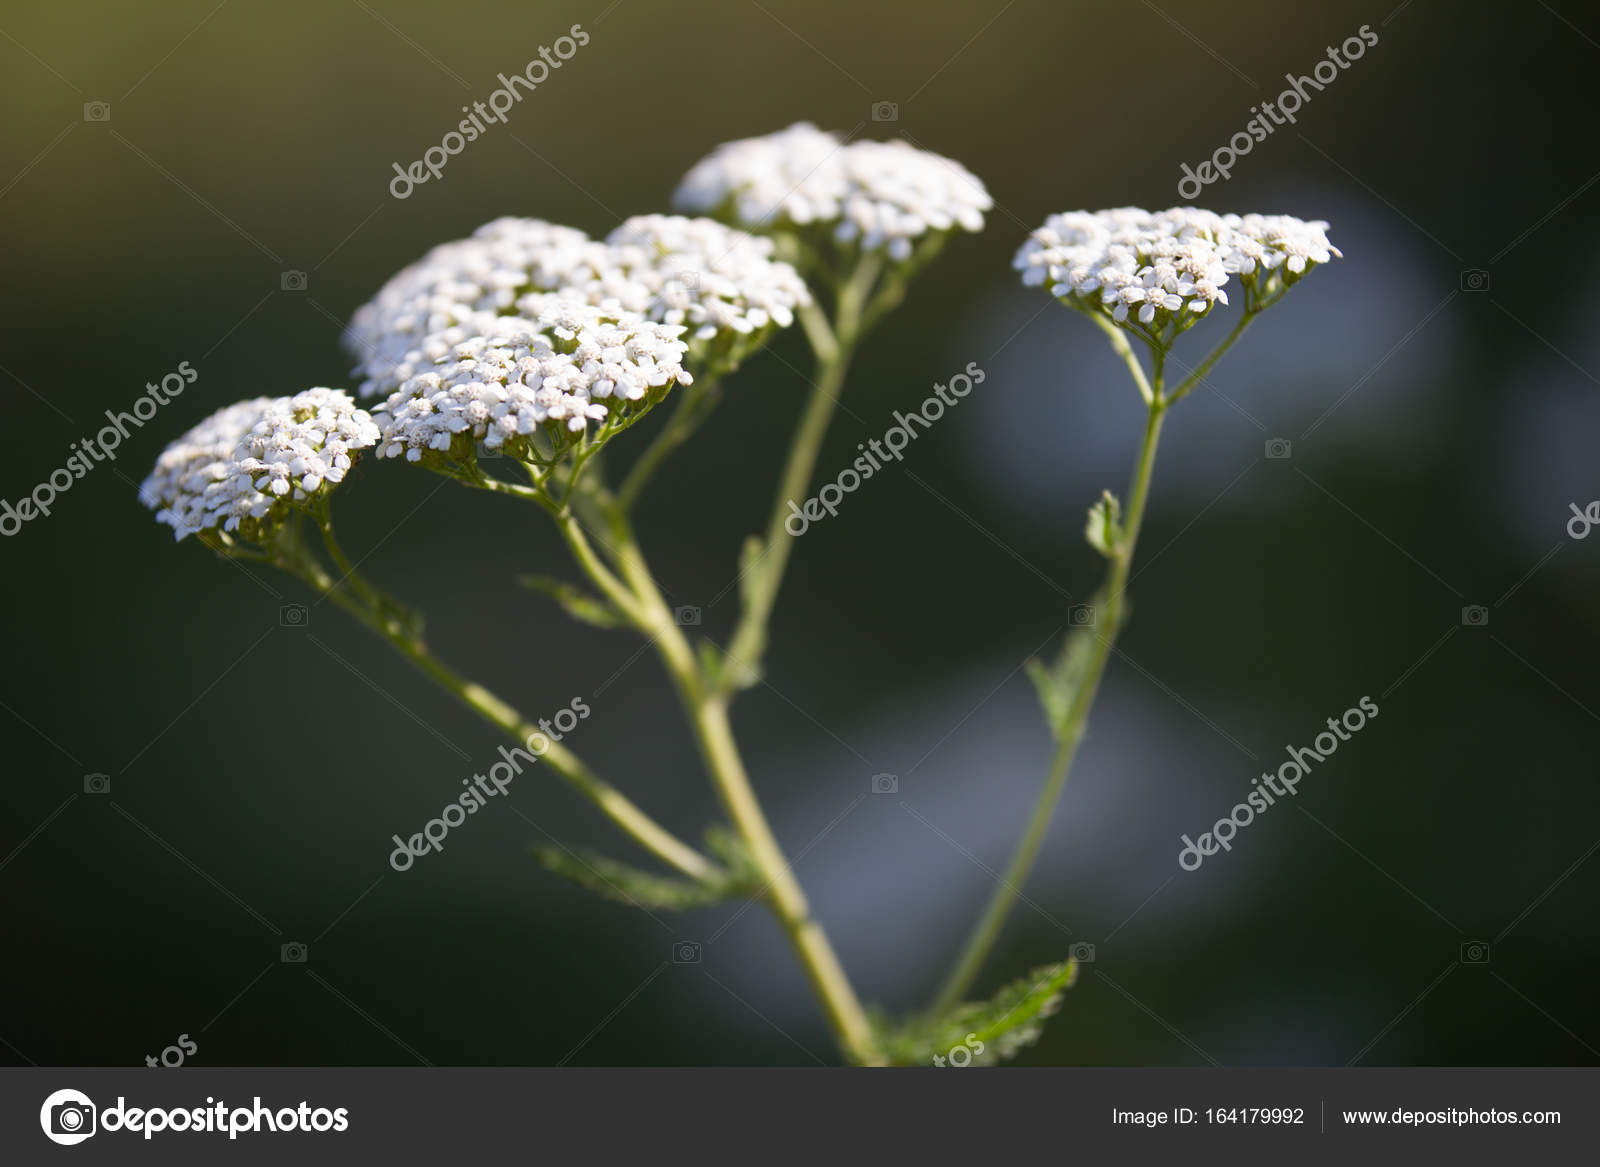 White Flowers Background Flower Euphorbia Close Up View Stock